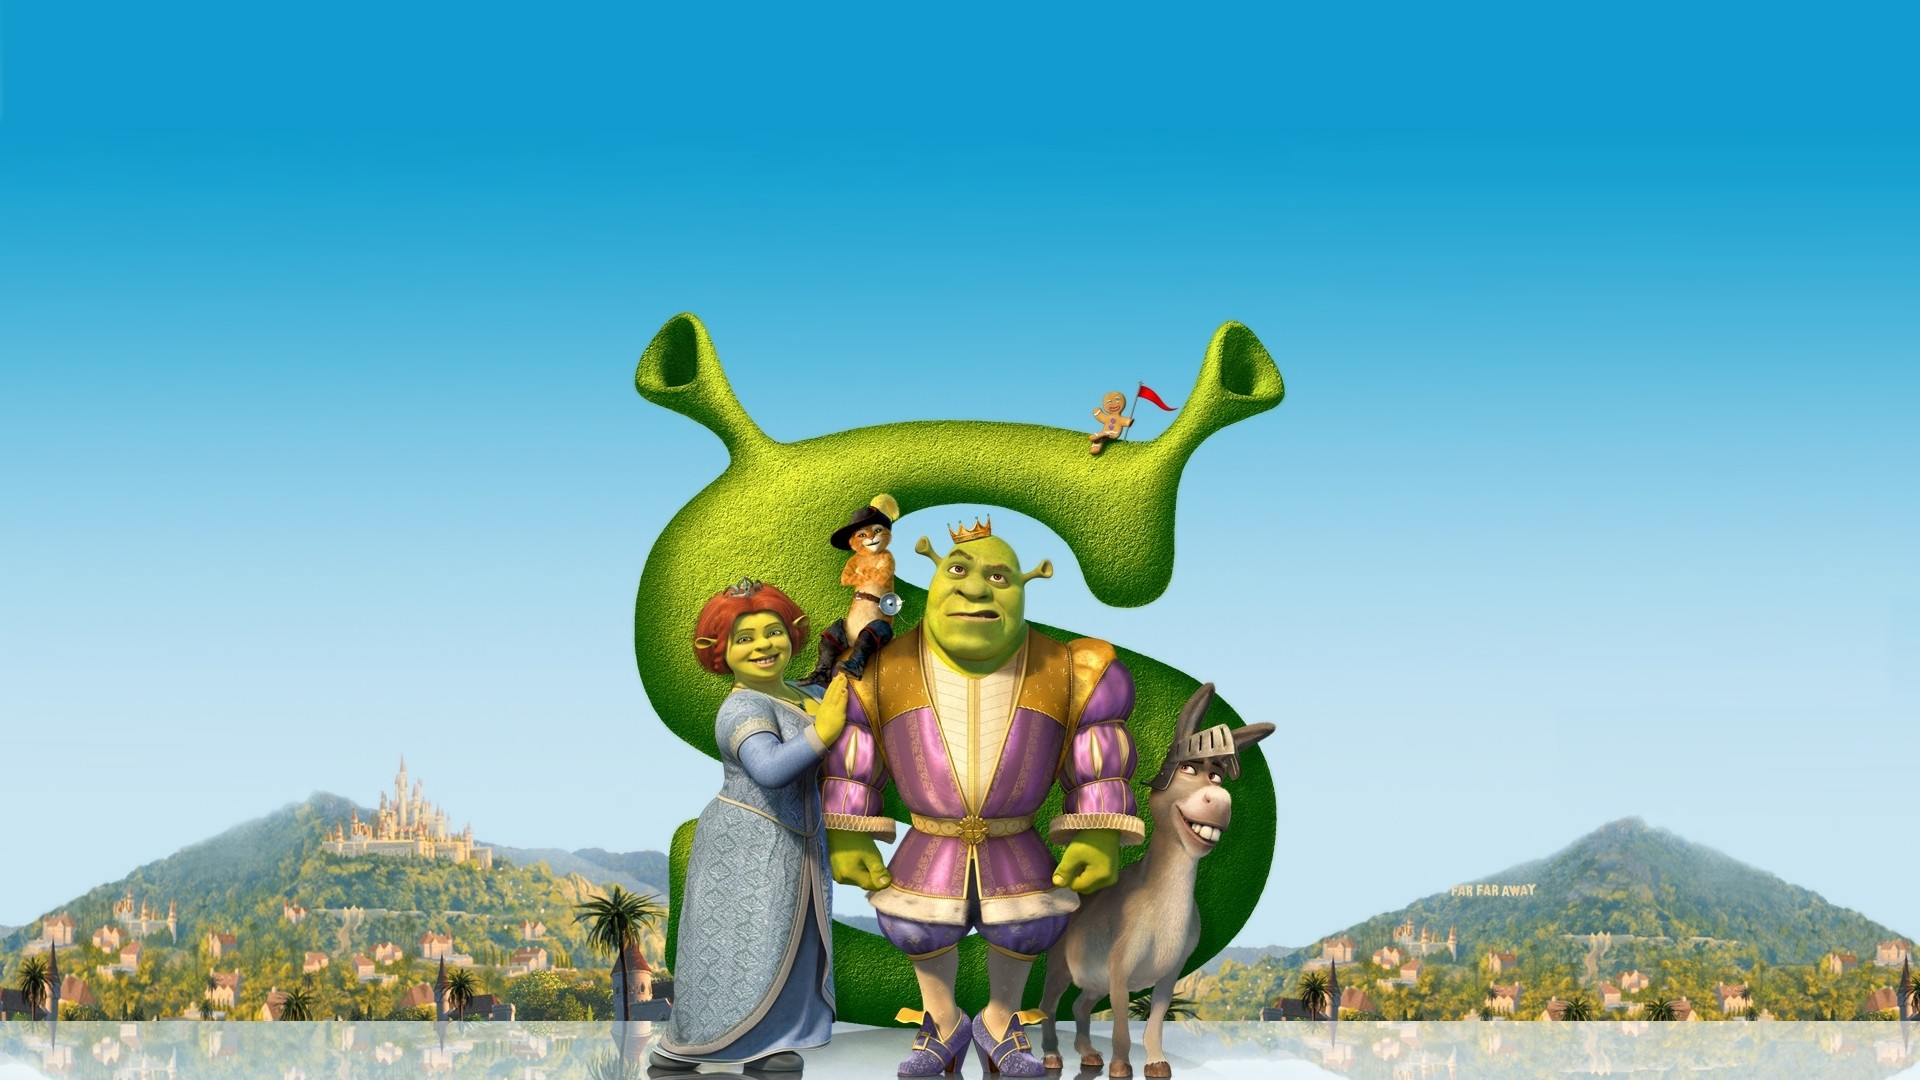 Shrek 2 Cartoon Characters : Shrek wallpaper ·①